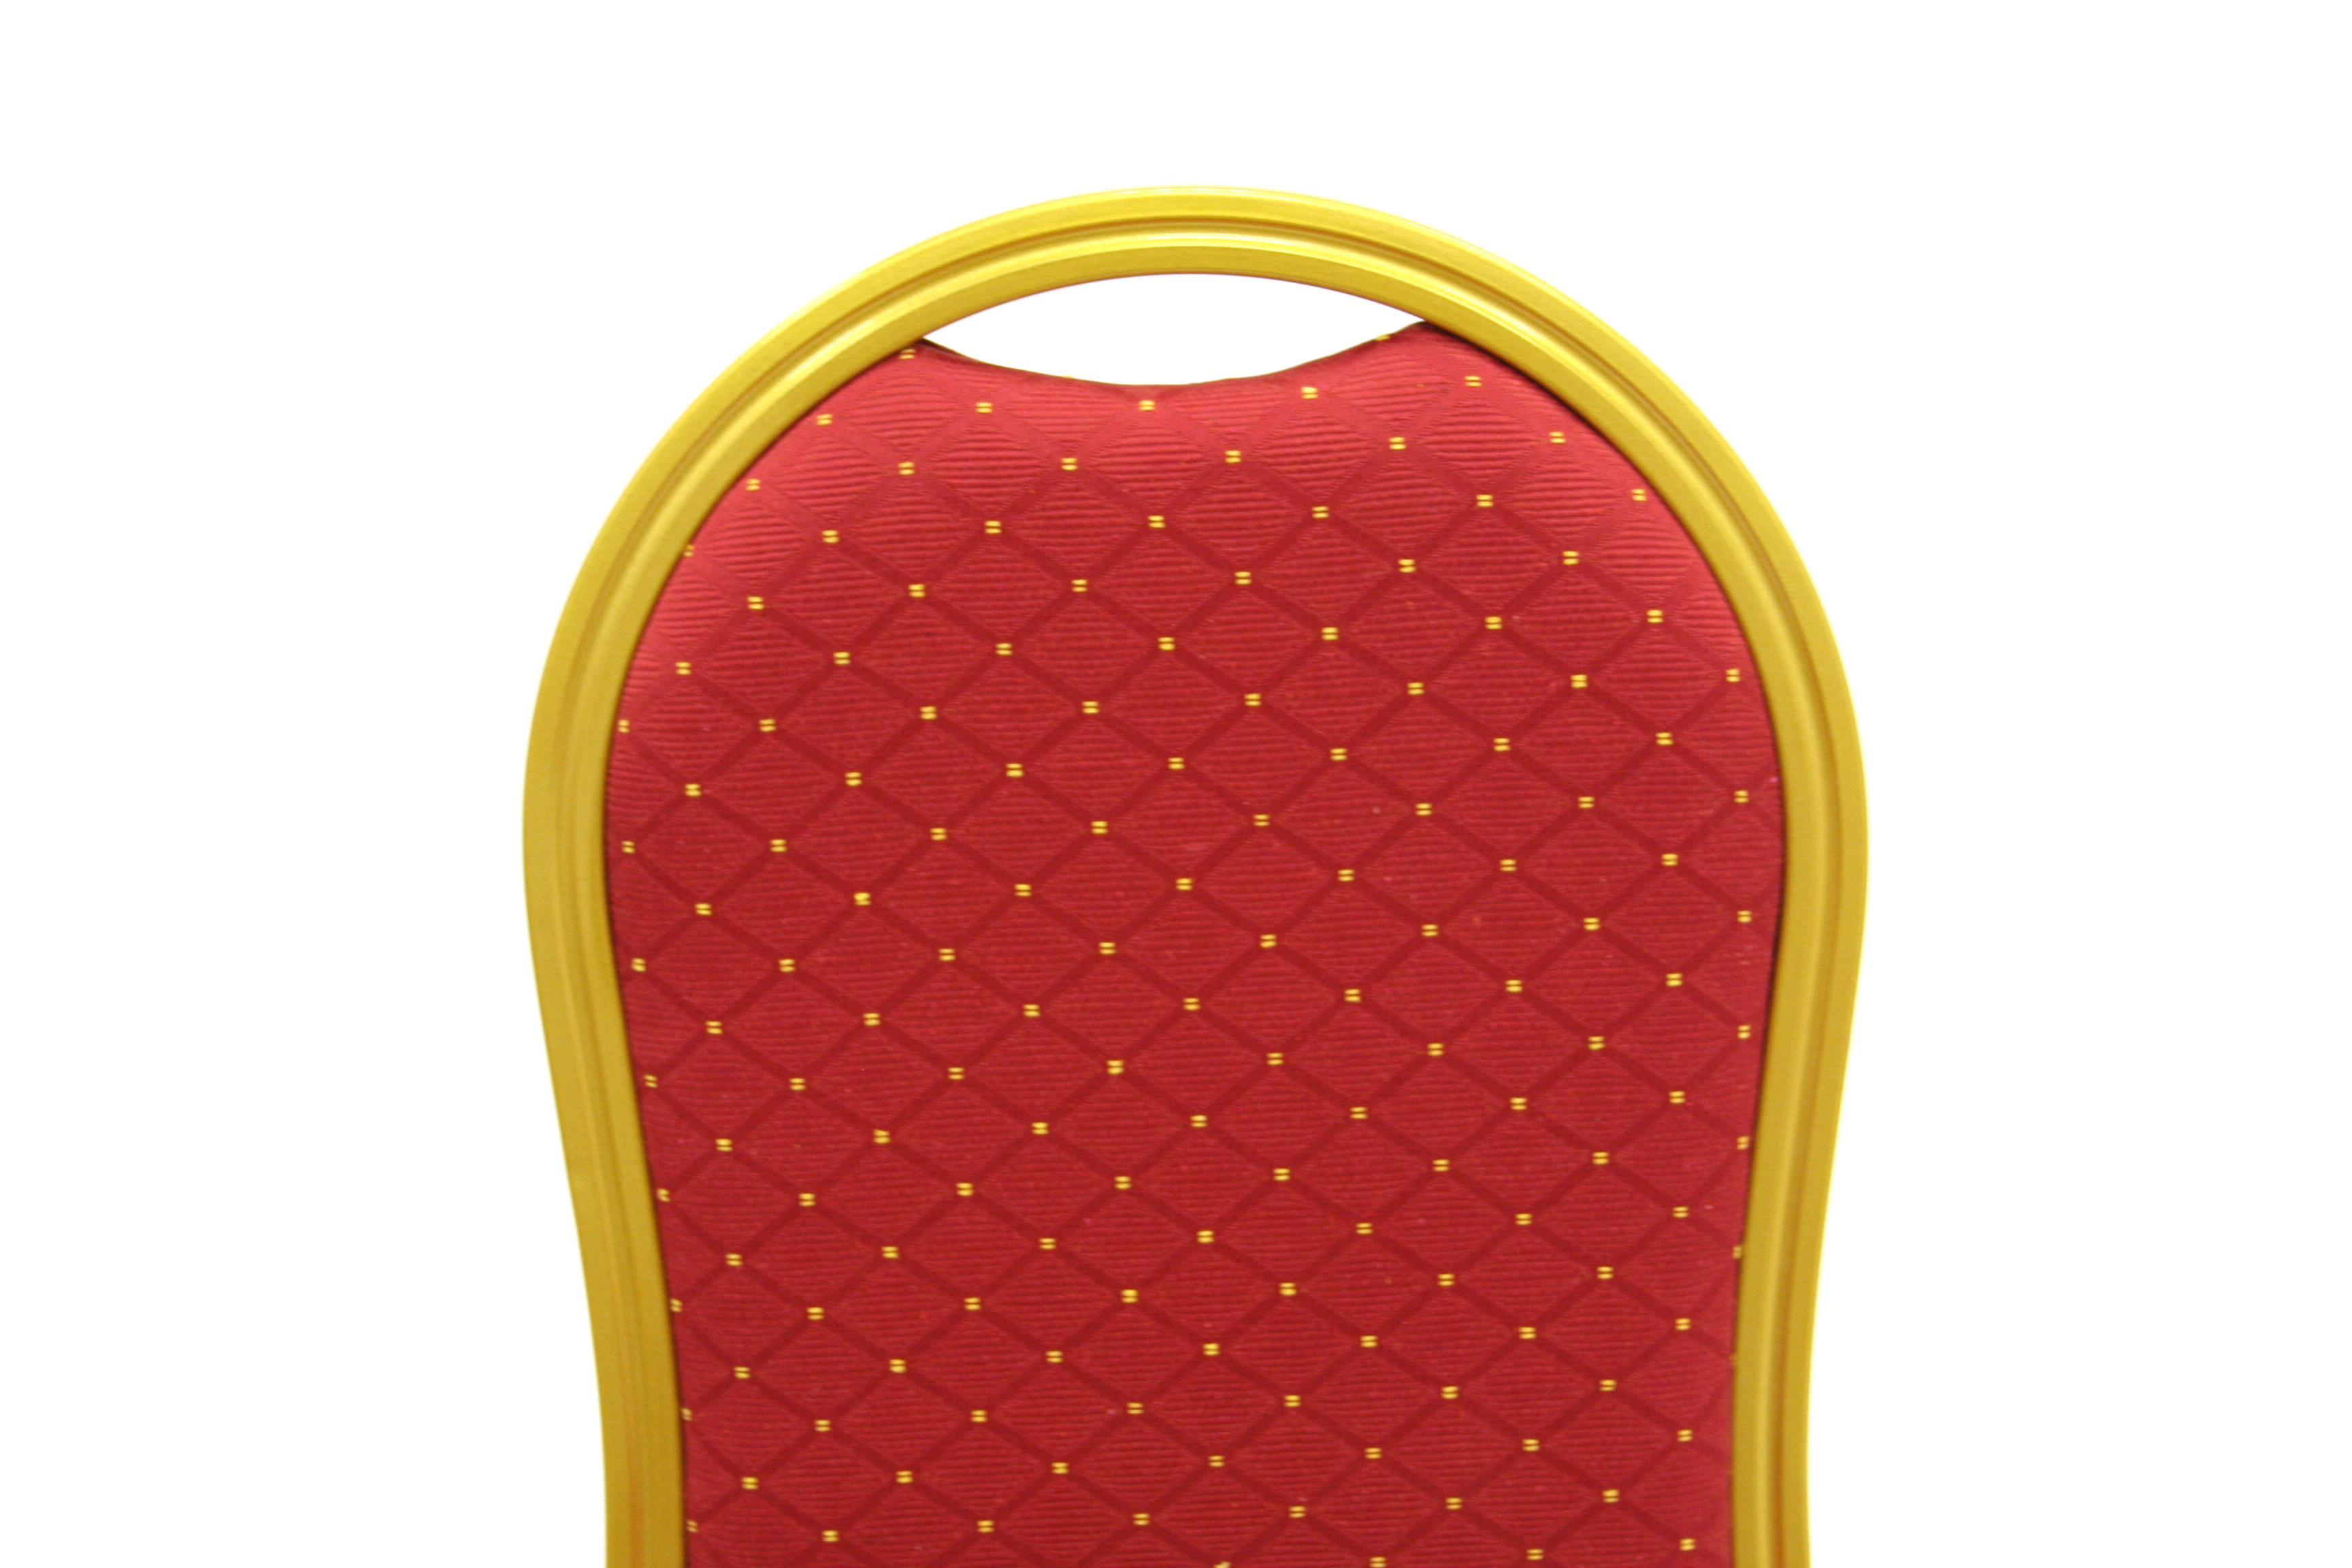 Gold aluminium framed banquet chair with a red padded seat & back - BE Furniture Sales